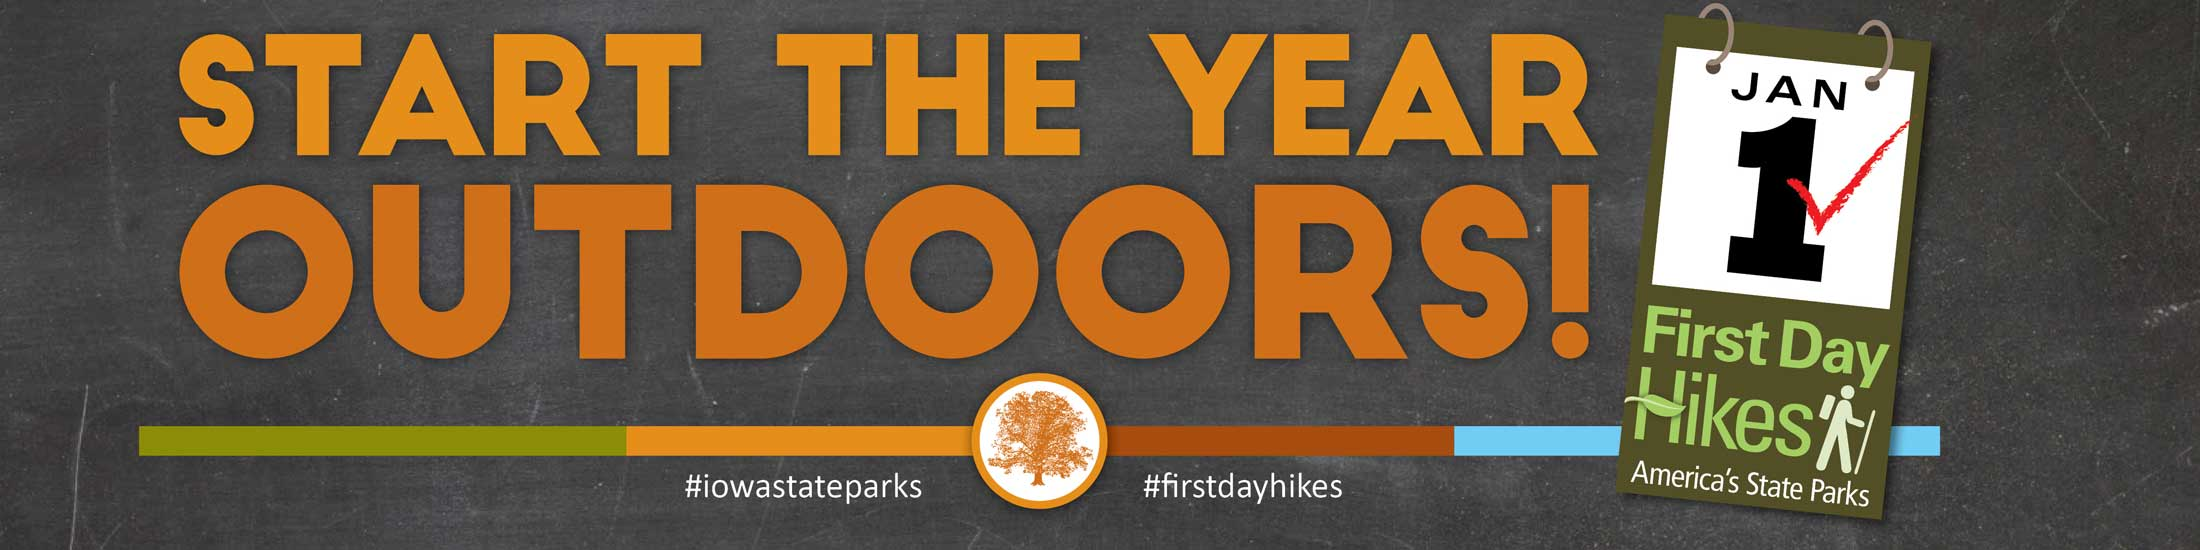 First Day Hikes, get Outdoors on January 1st!